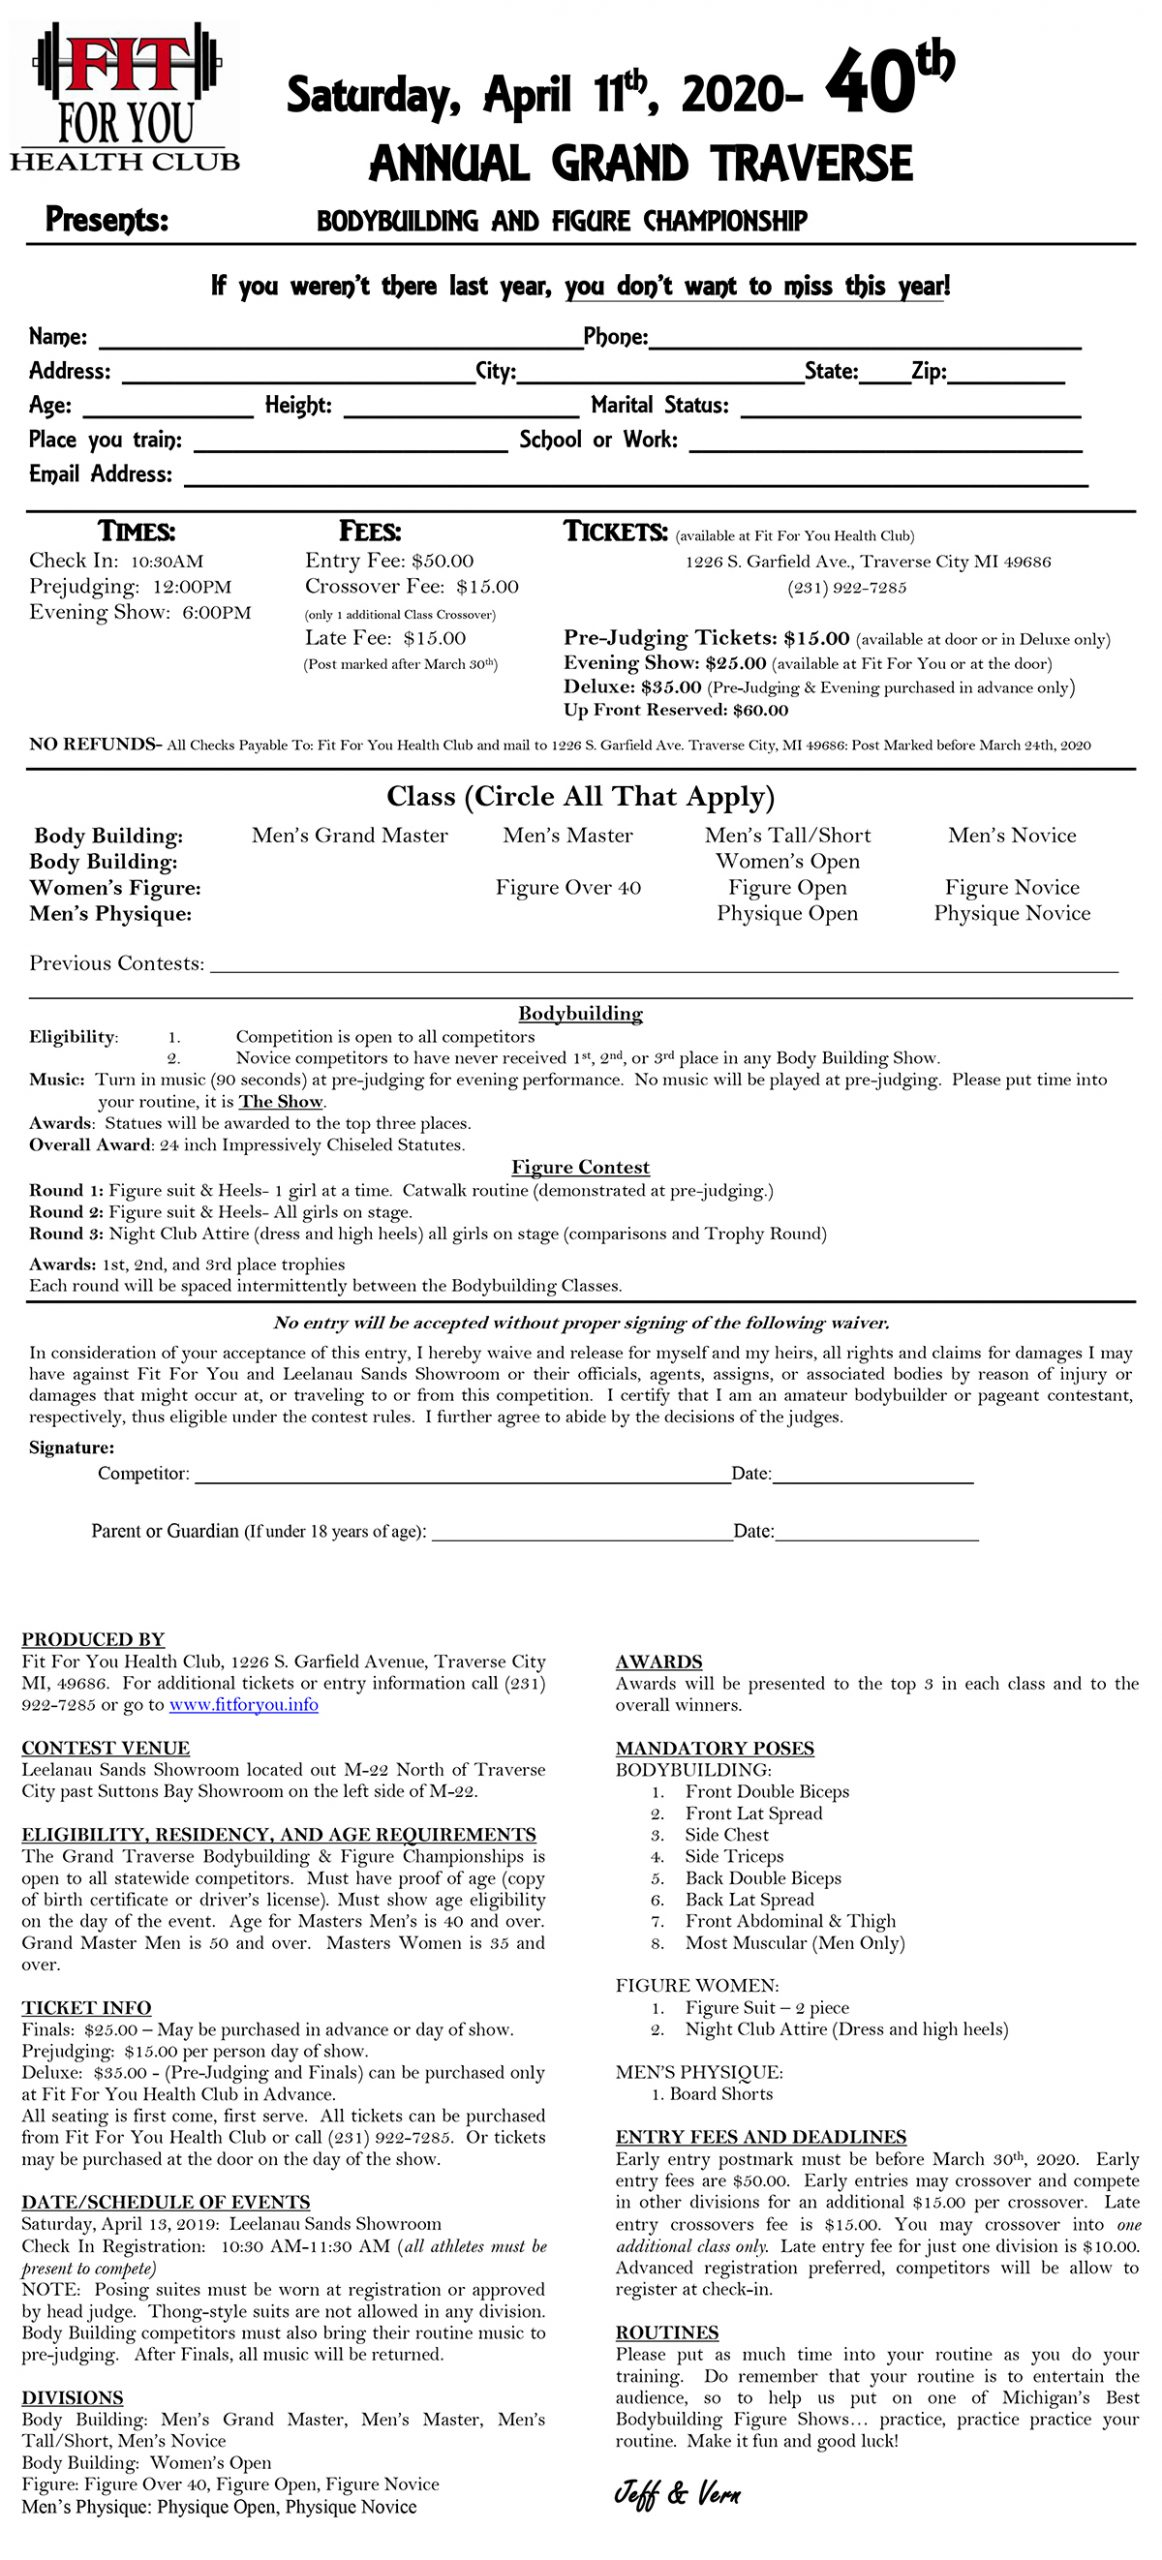 2020 Grand Traverse Bodybuilding & Figure Championship Registration Form